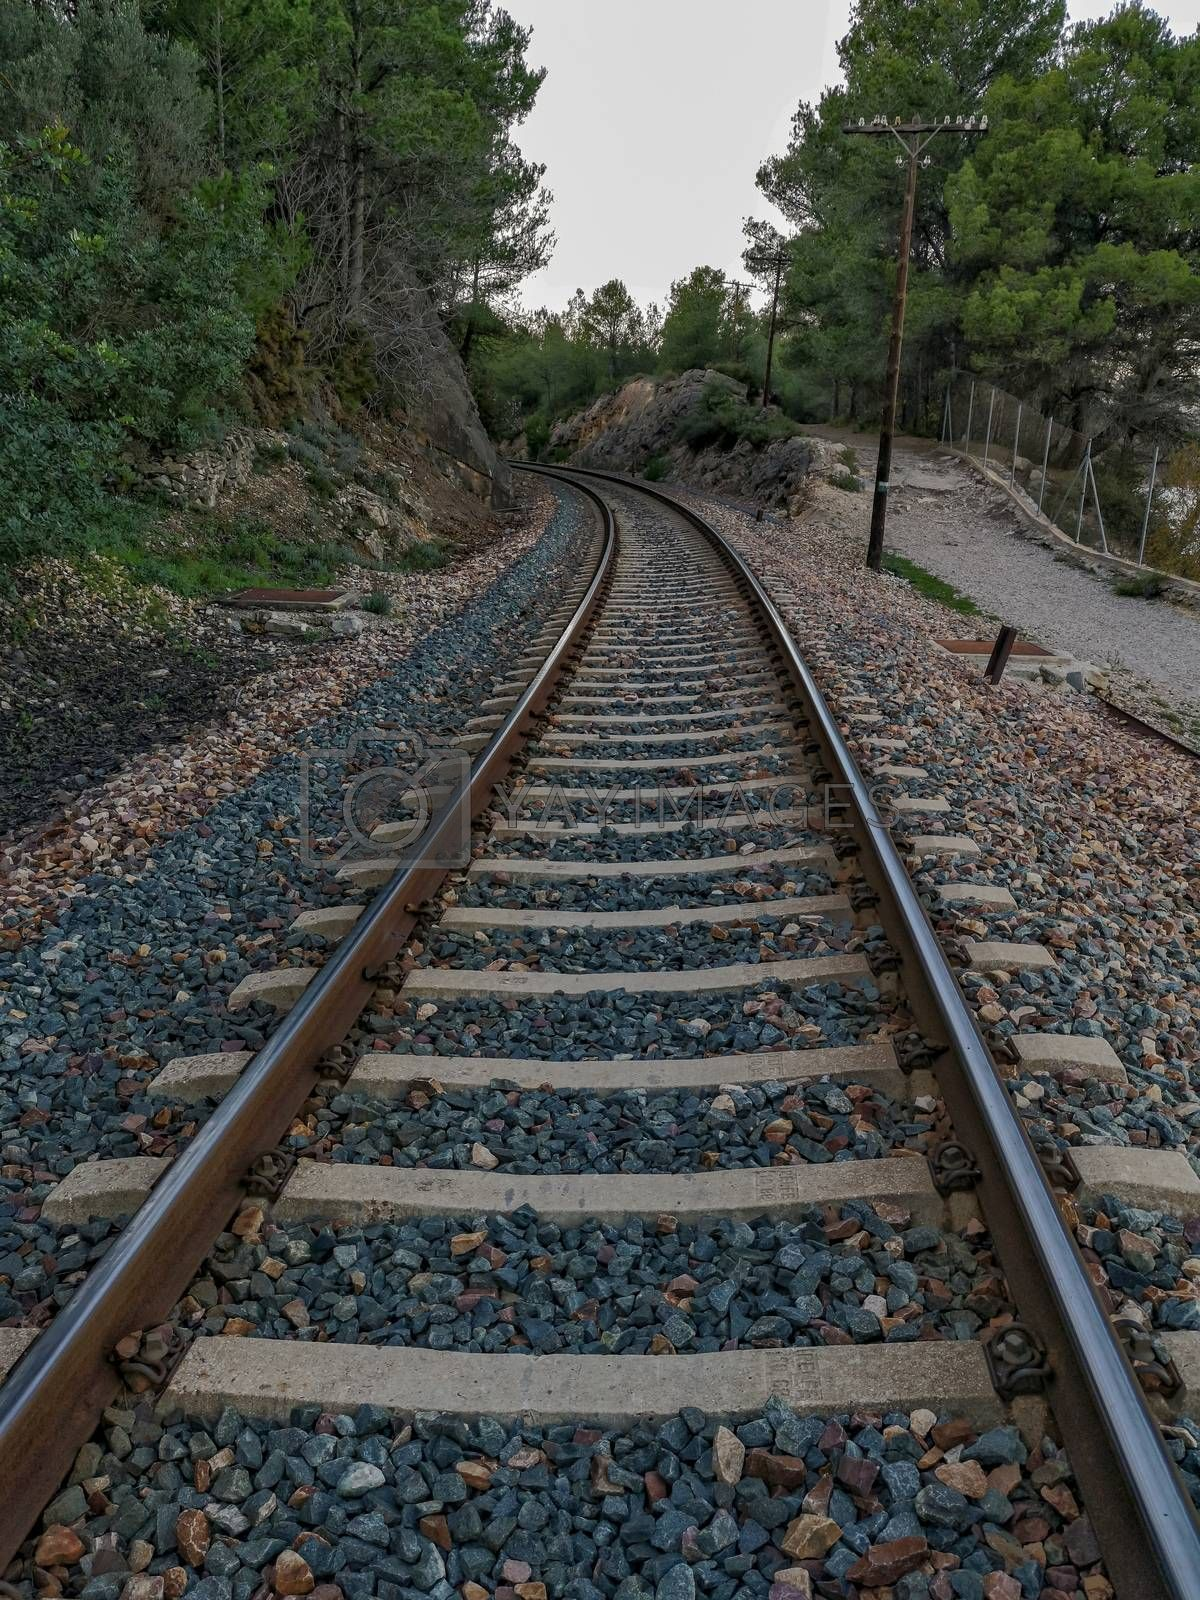 Train track through the mountain with a curve